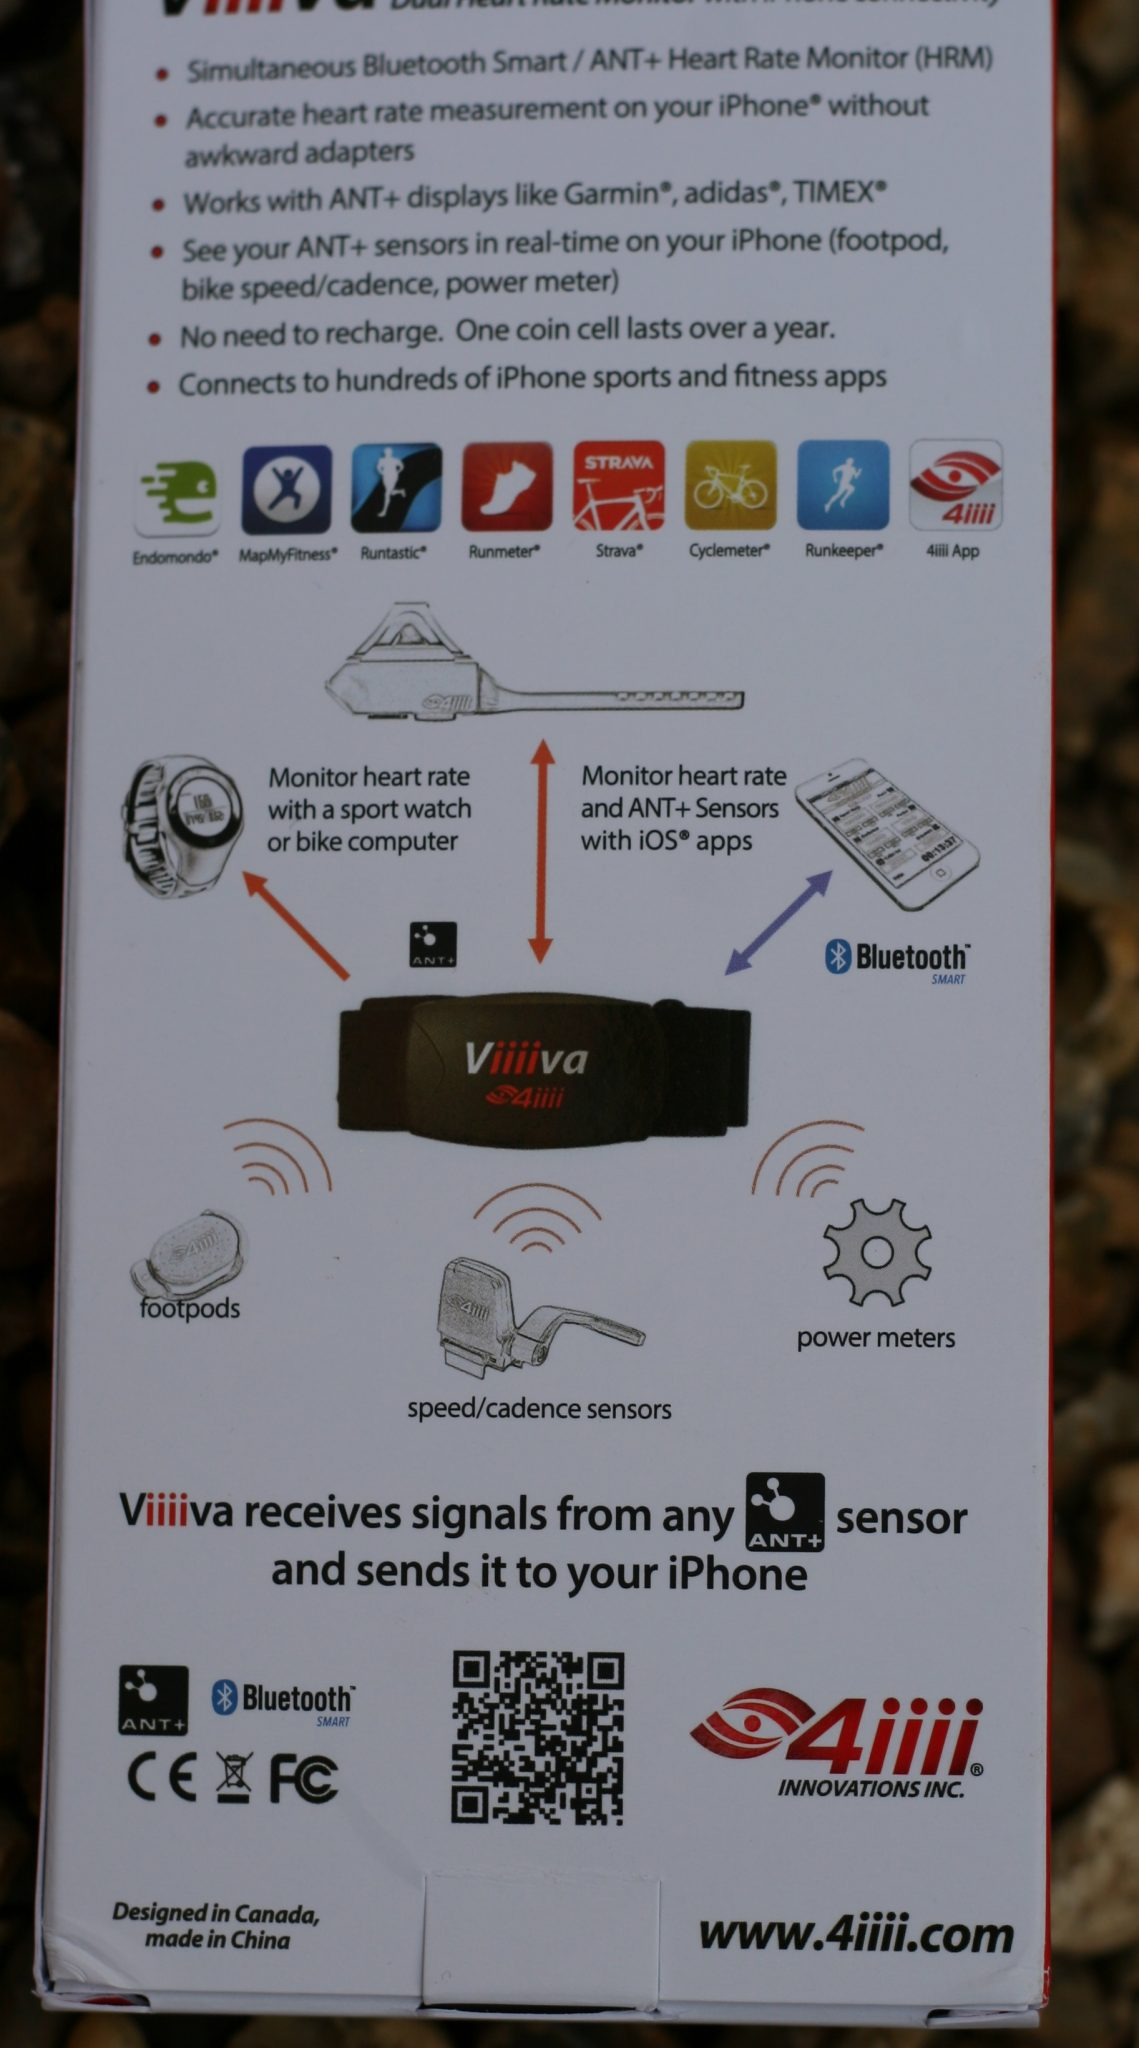 4iiii Viiiva V100 Heart Rate Monitor Bridge